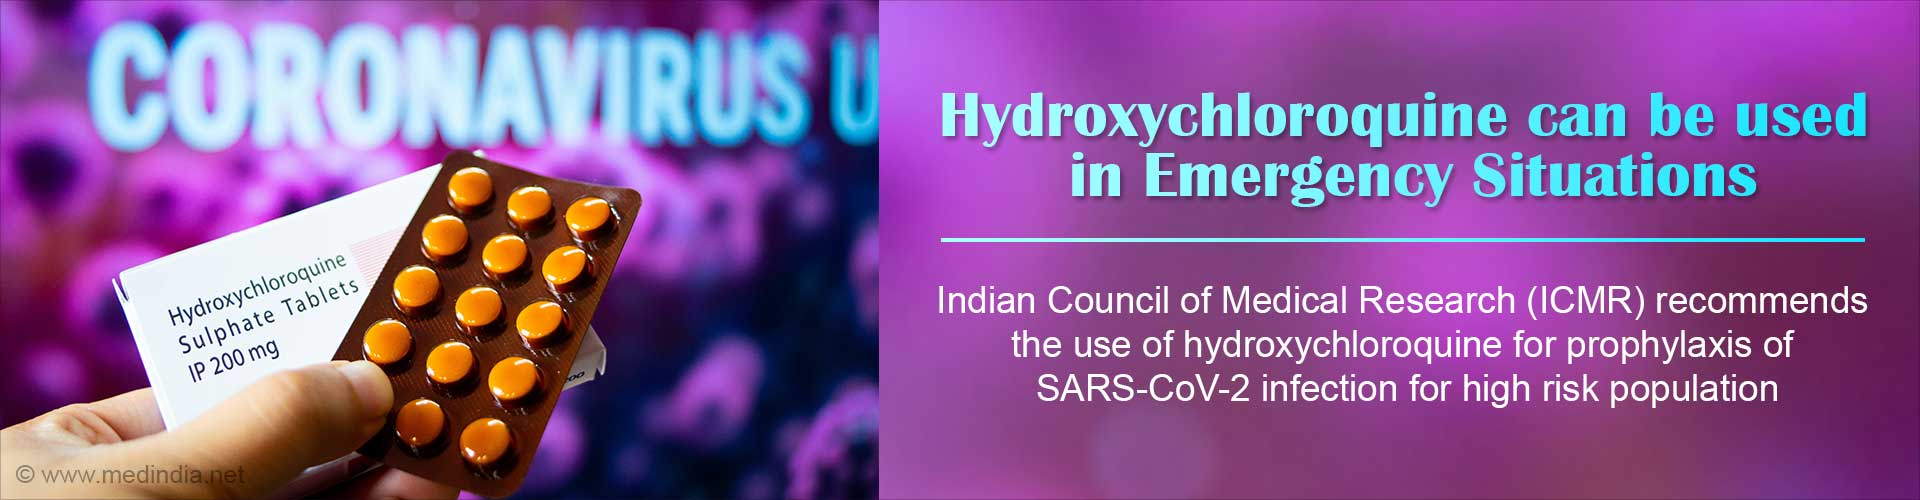 ICMR Recommends Hydroxychloroquine Use in Emergency Situations